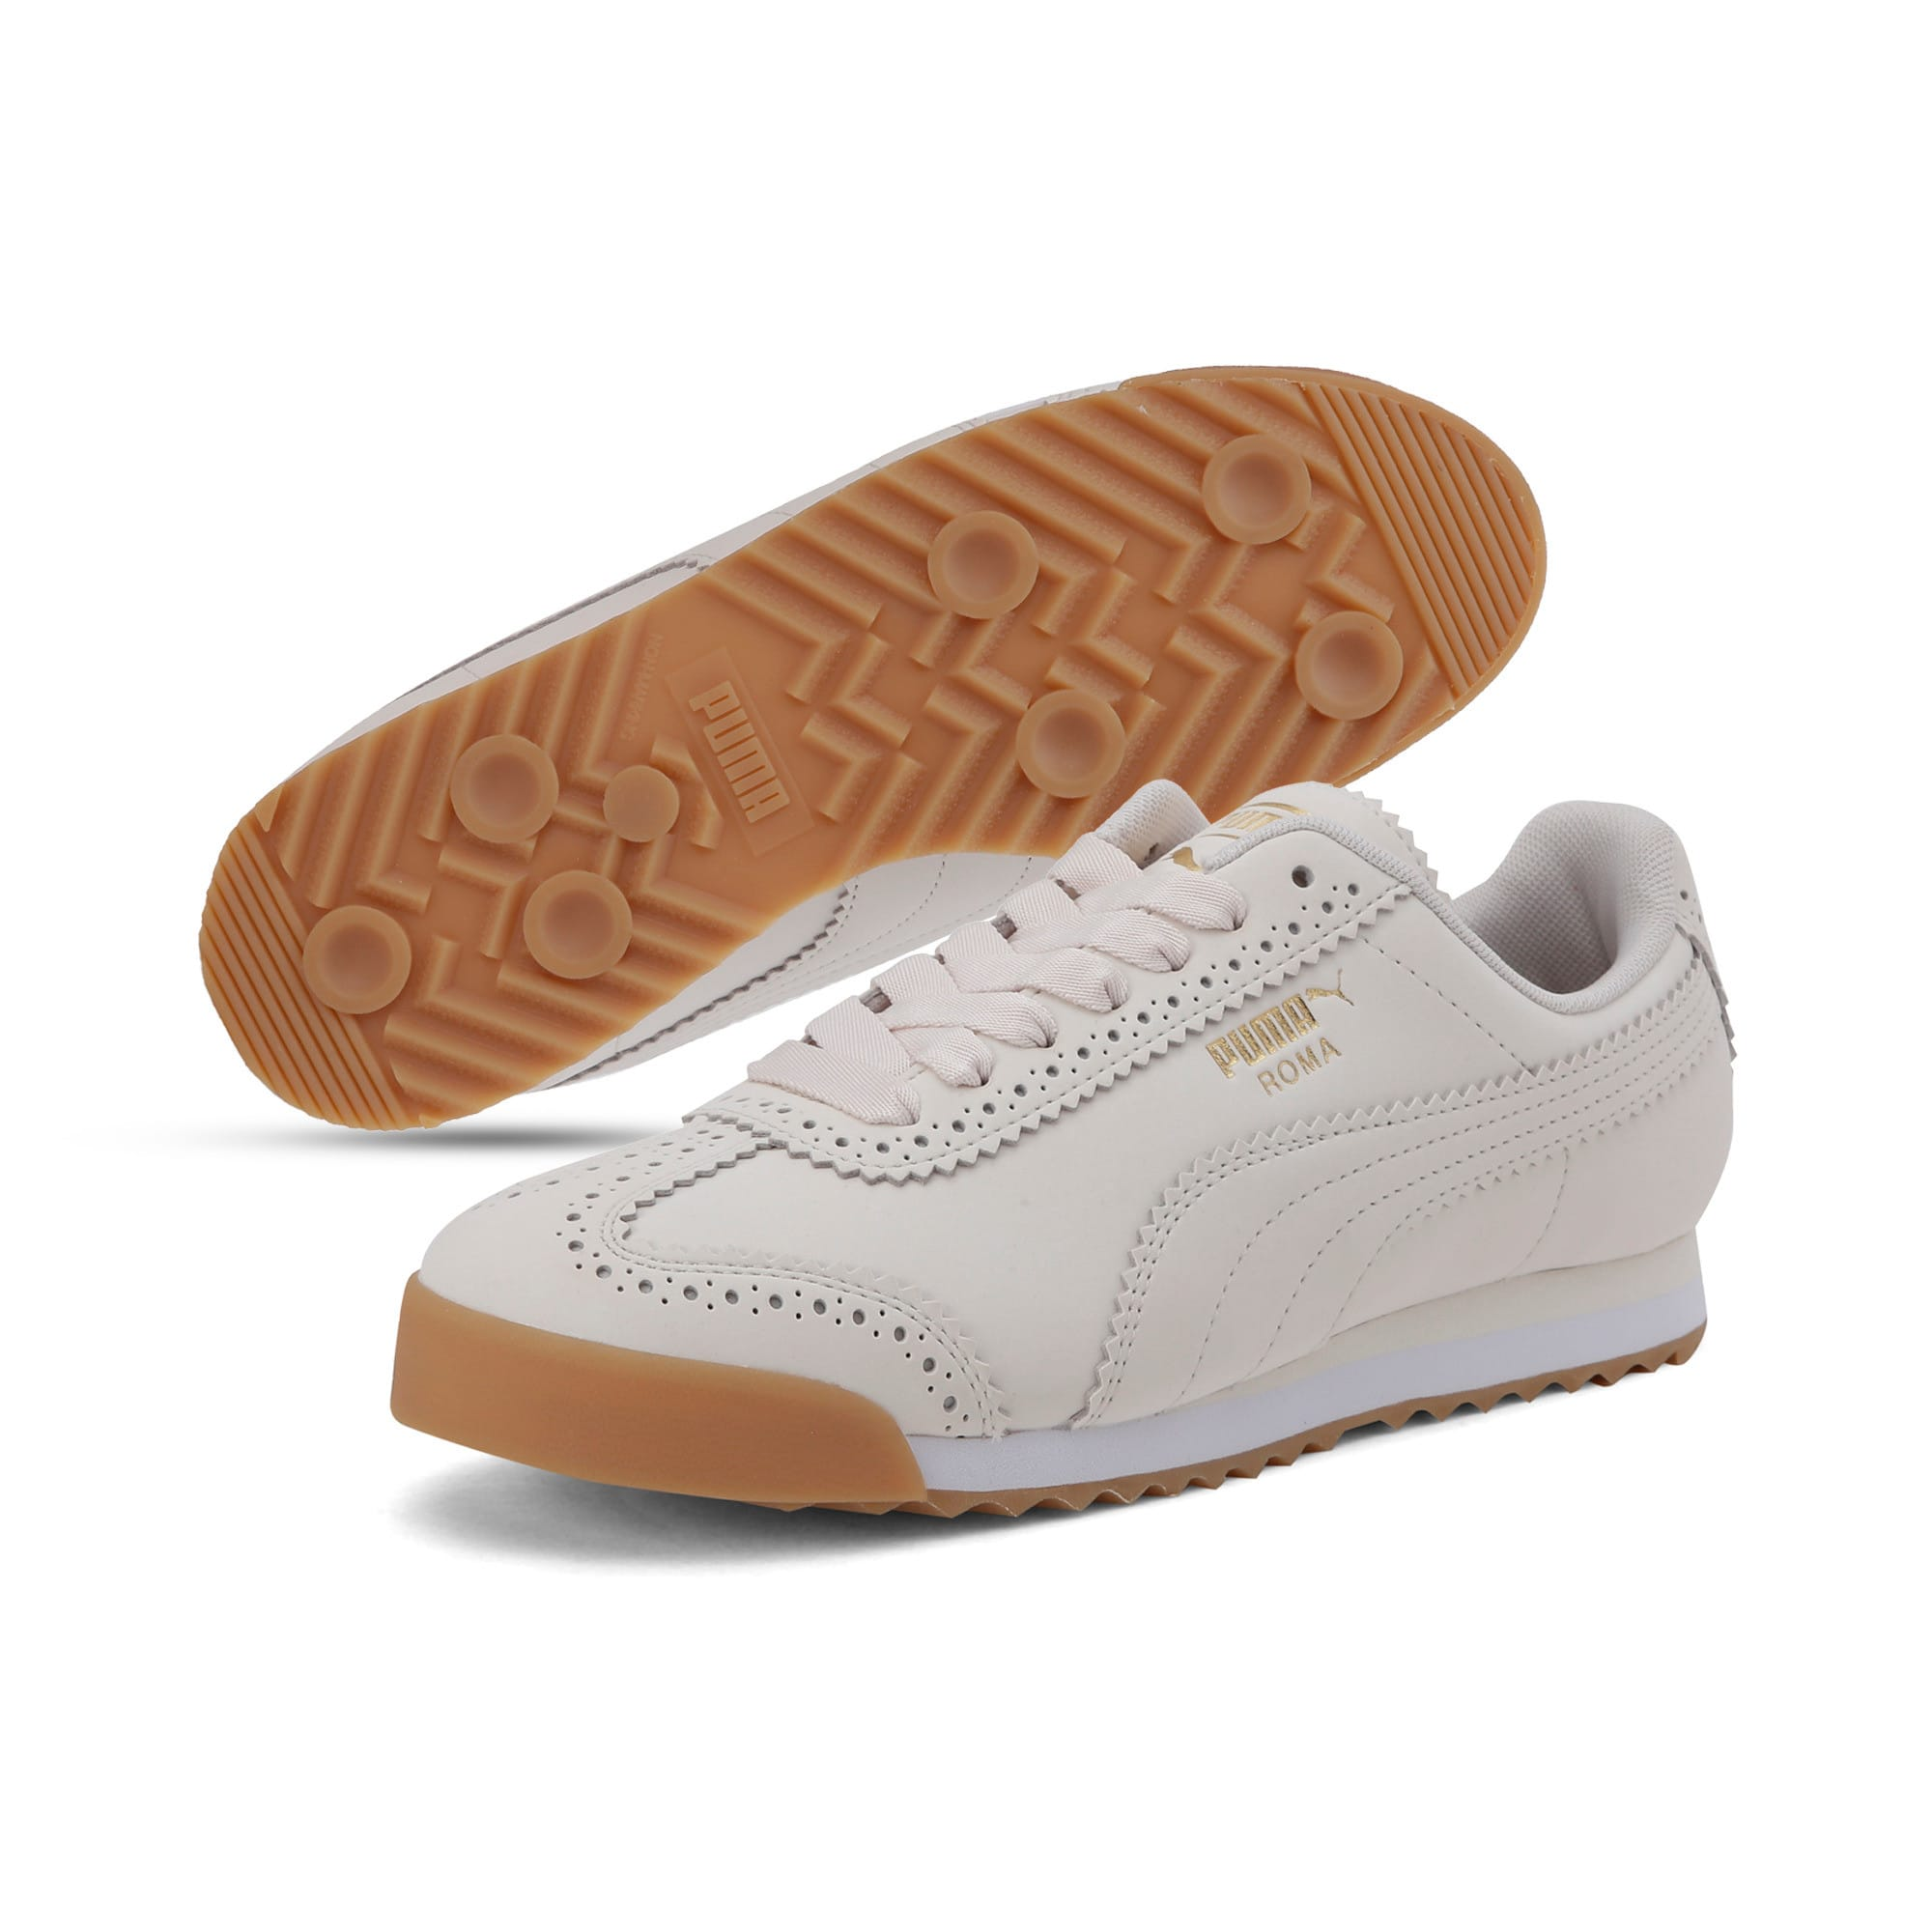 Thumbnail 2 of Roma Brogue Women's Trainers, Pastel Parchment-P.Team Gold, medium-IND